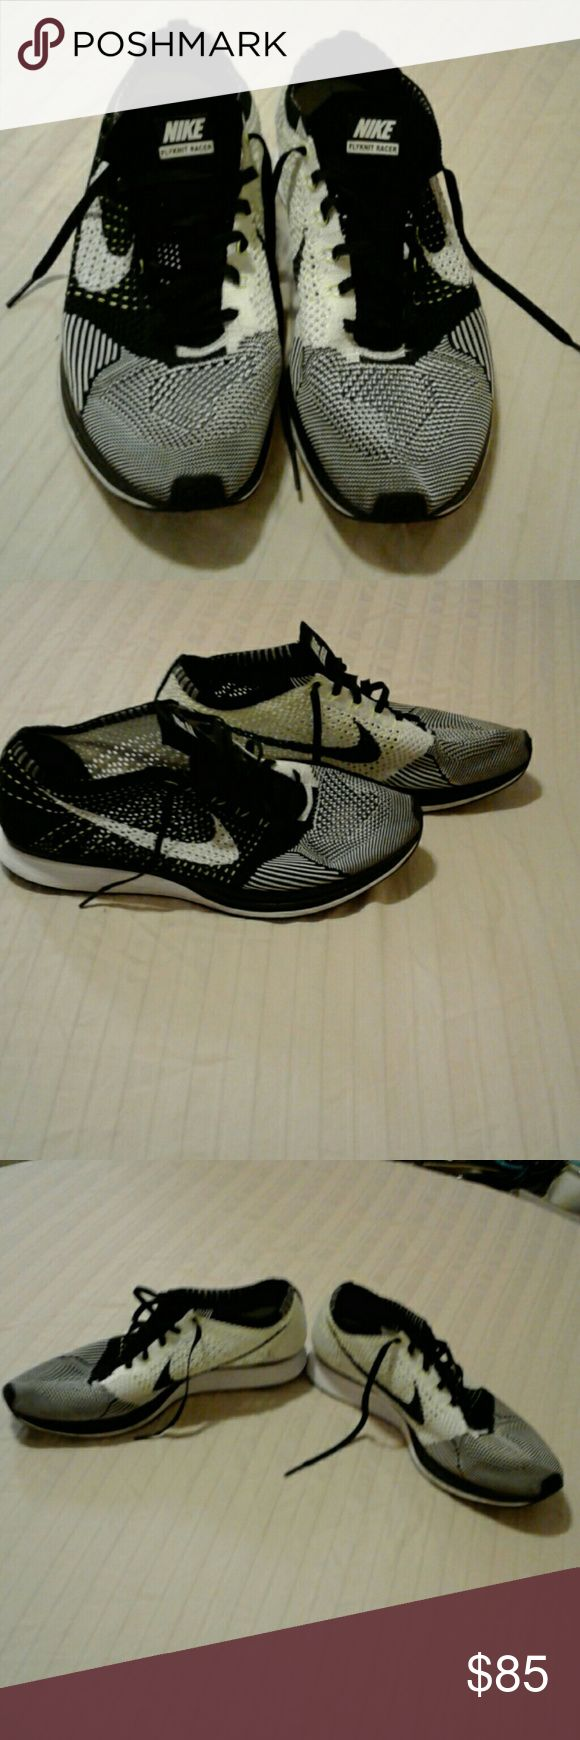 Men's  Nike Flyknit Racer shoes Black, white and some neon tellow treading. Outside of shoes is mainly back with white and some neon threads. The inner side of the shoes is mainly white with some black and some neon yellow thread. In great condition. Nike Shoes